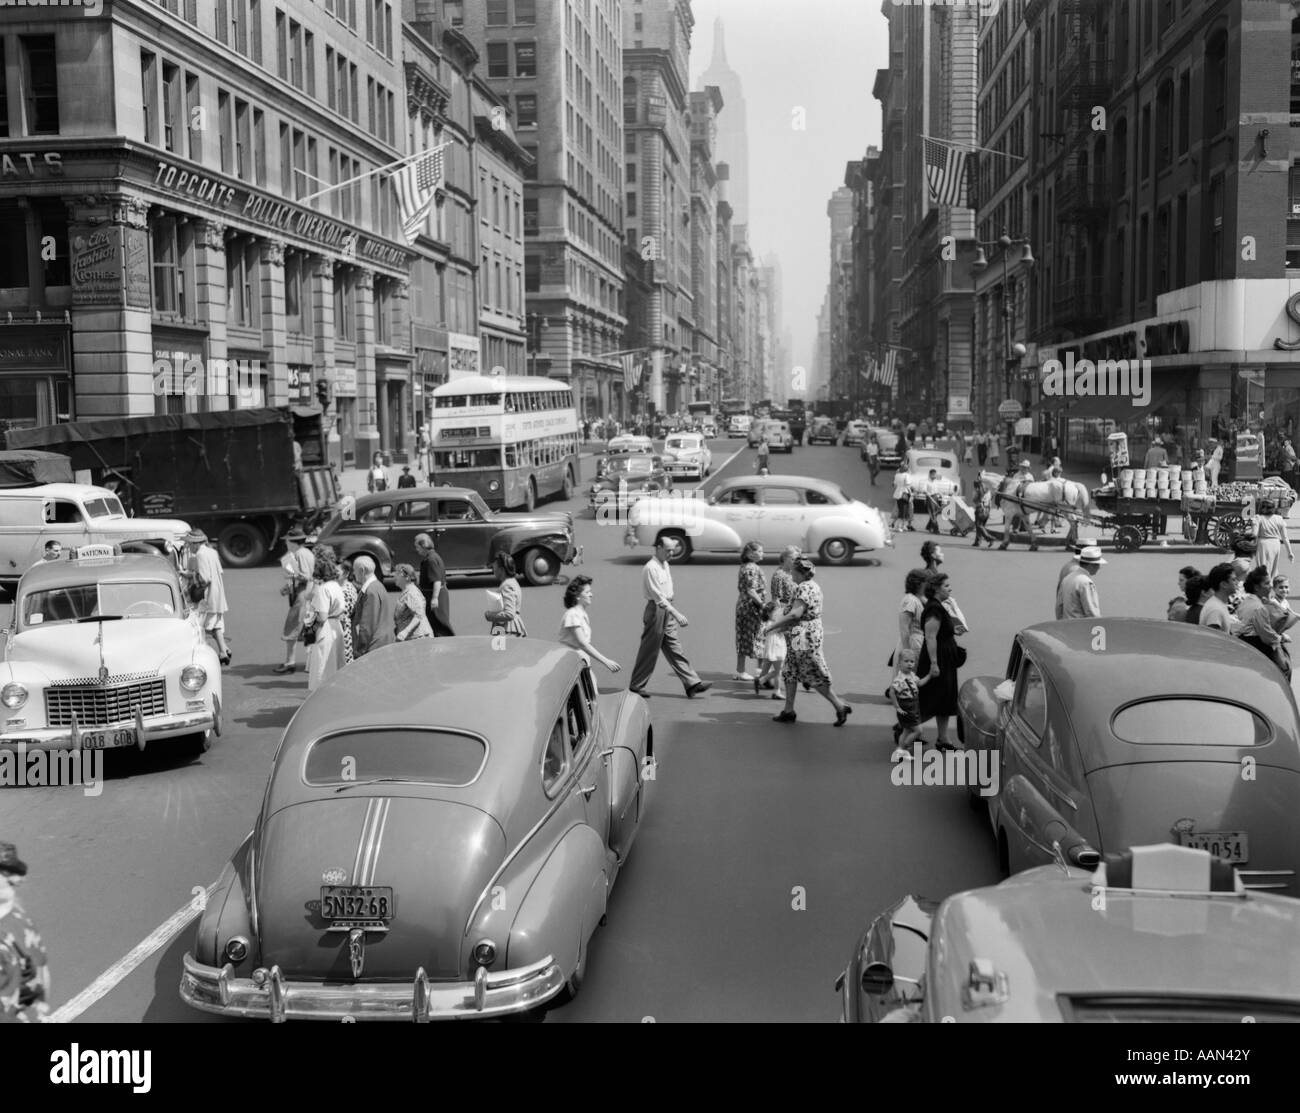 United Auto Group >> 1940s 1950s STREET SCENE CROWDS TRAFFIC INTERSECTION FIFTH AVENUE Stock Photo: 12667682 - Alamy